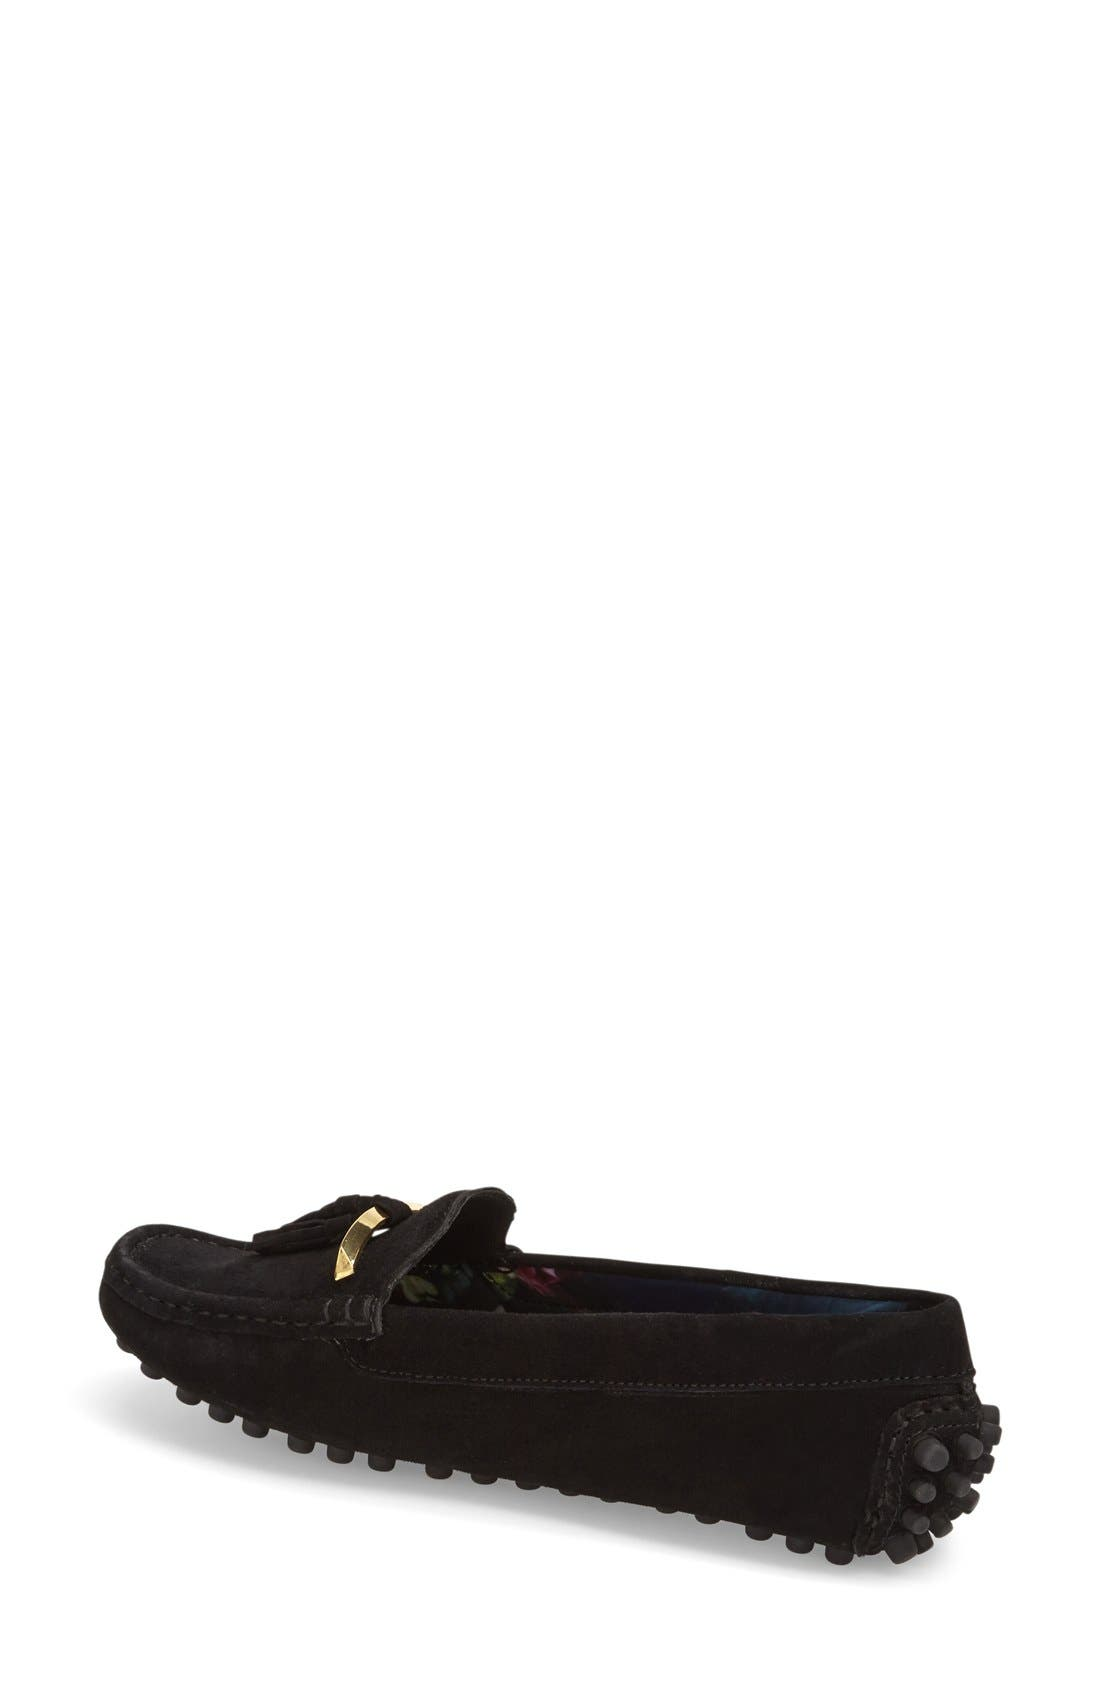 TED BAKER LONDON,                             'Harlii' Driving Loafer,                             Alternate thumbnail 3, color,                             010